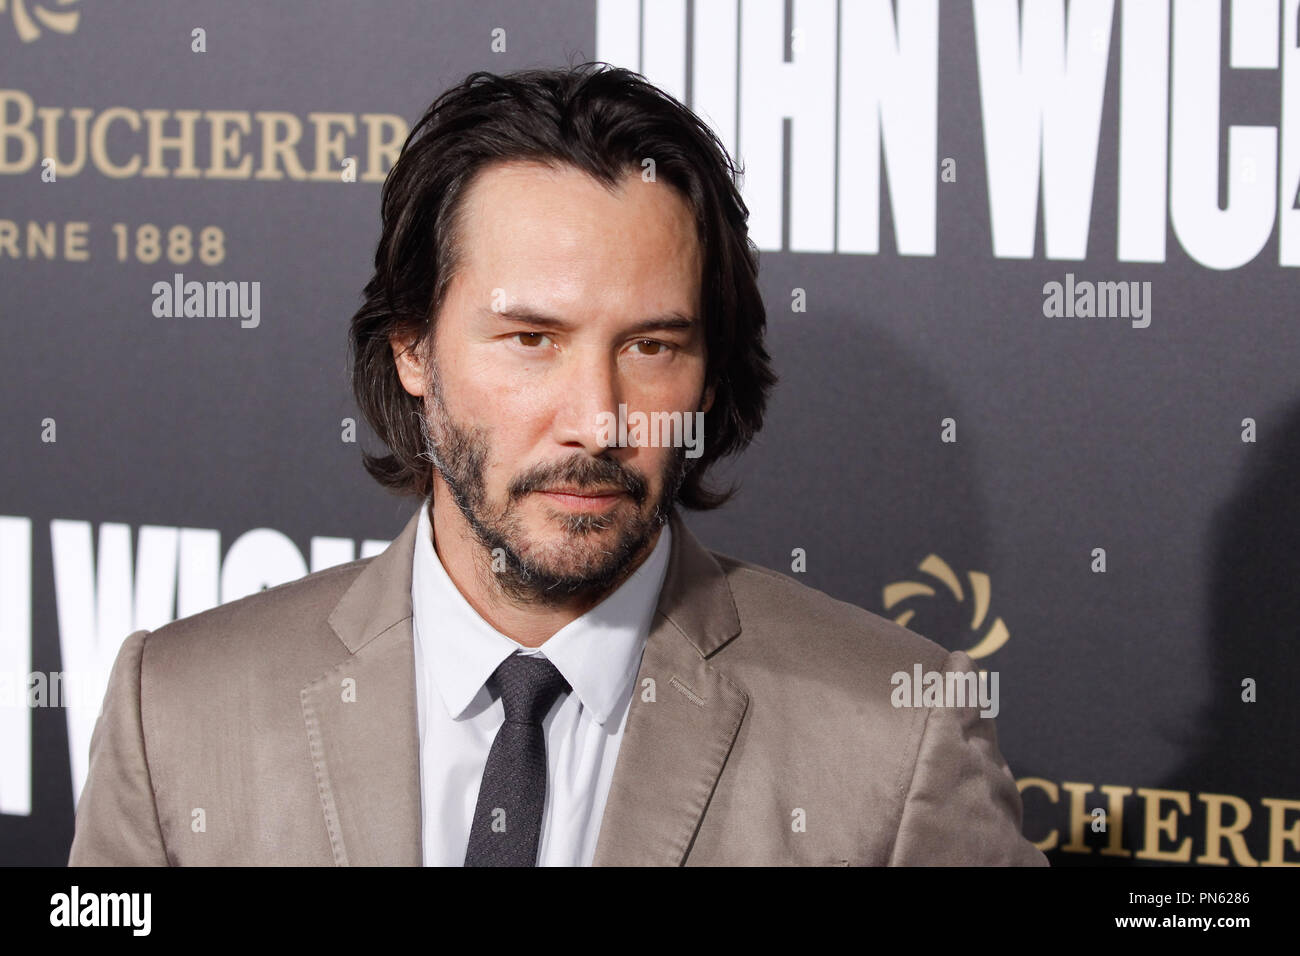 Keanu Reeves At Summit Entertainments Los Angeles Premiere Of John